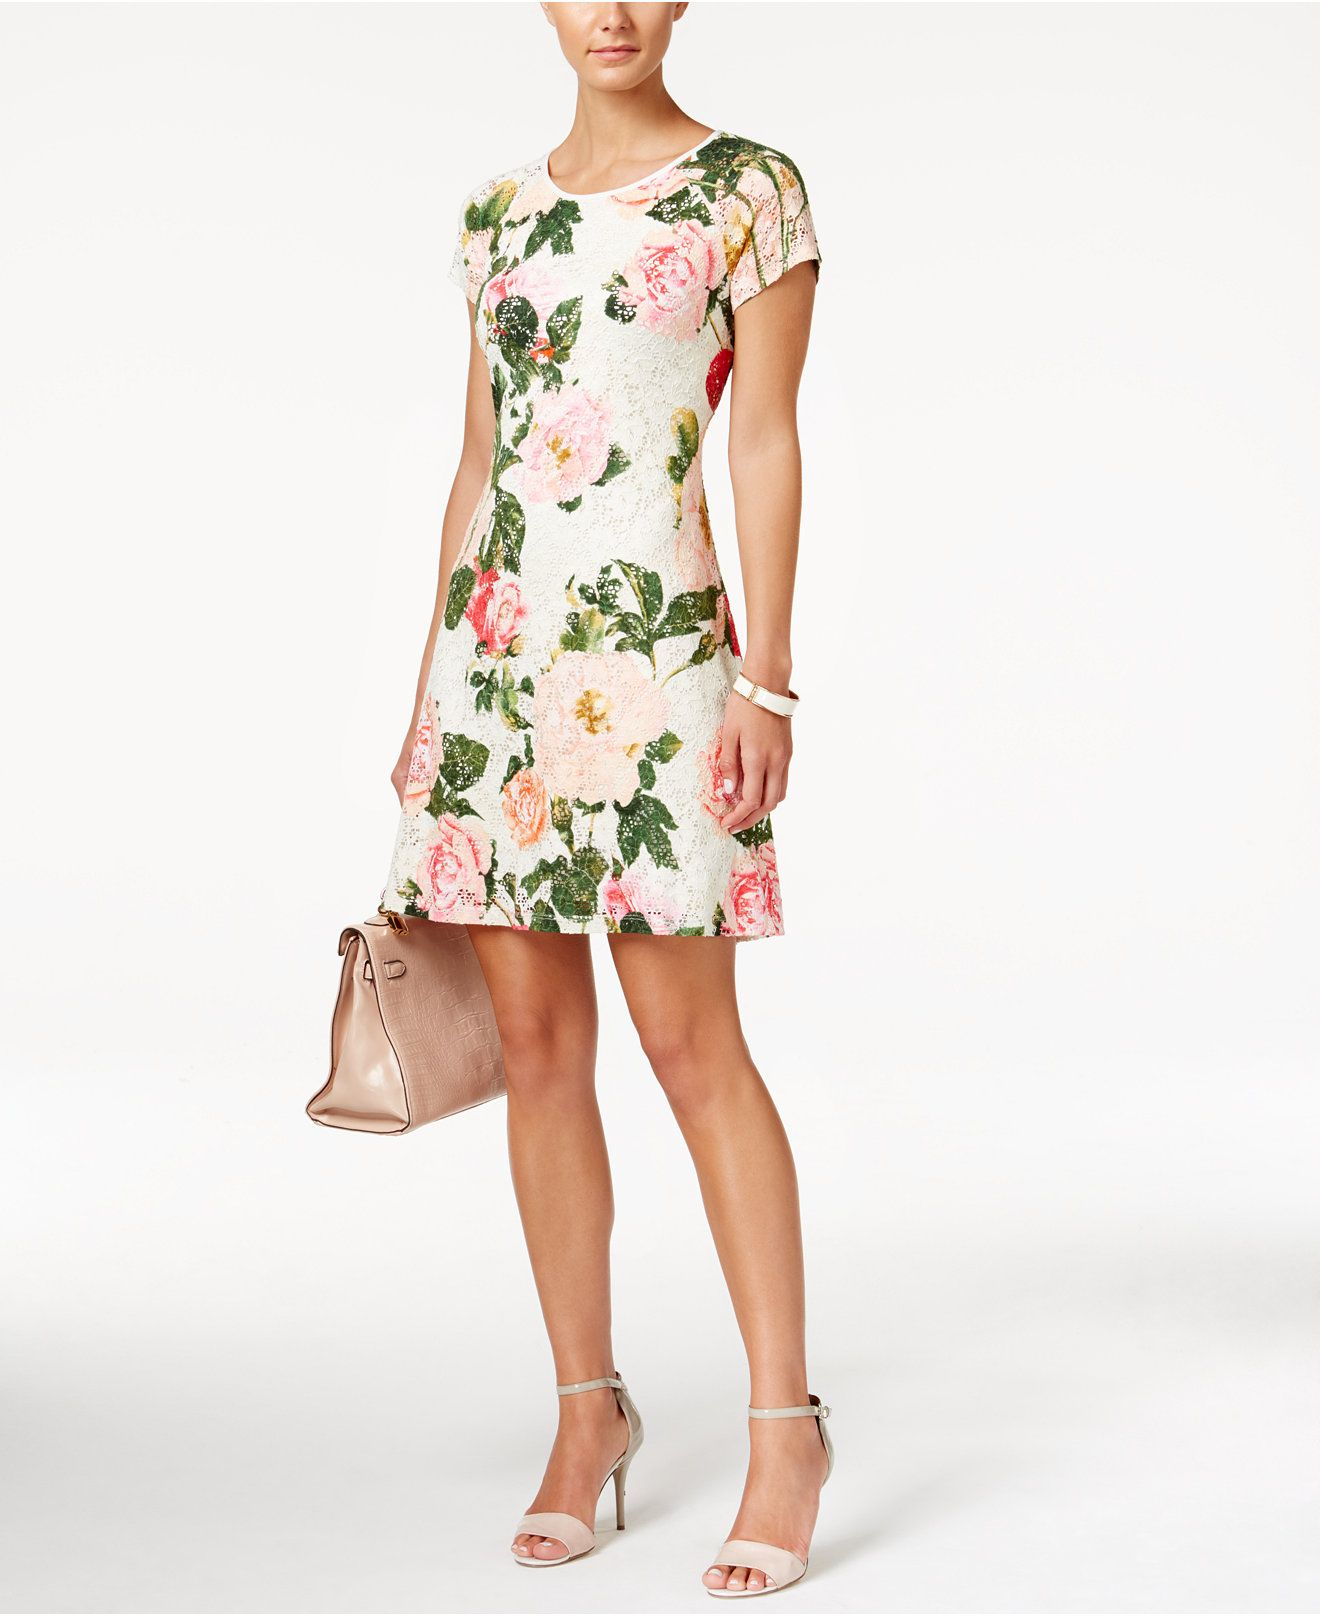 627bbe99ad Ronni Nicole Short-Sleeve Floral-Print Fit   Flare Dress - What s New -  Women - Macy s